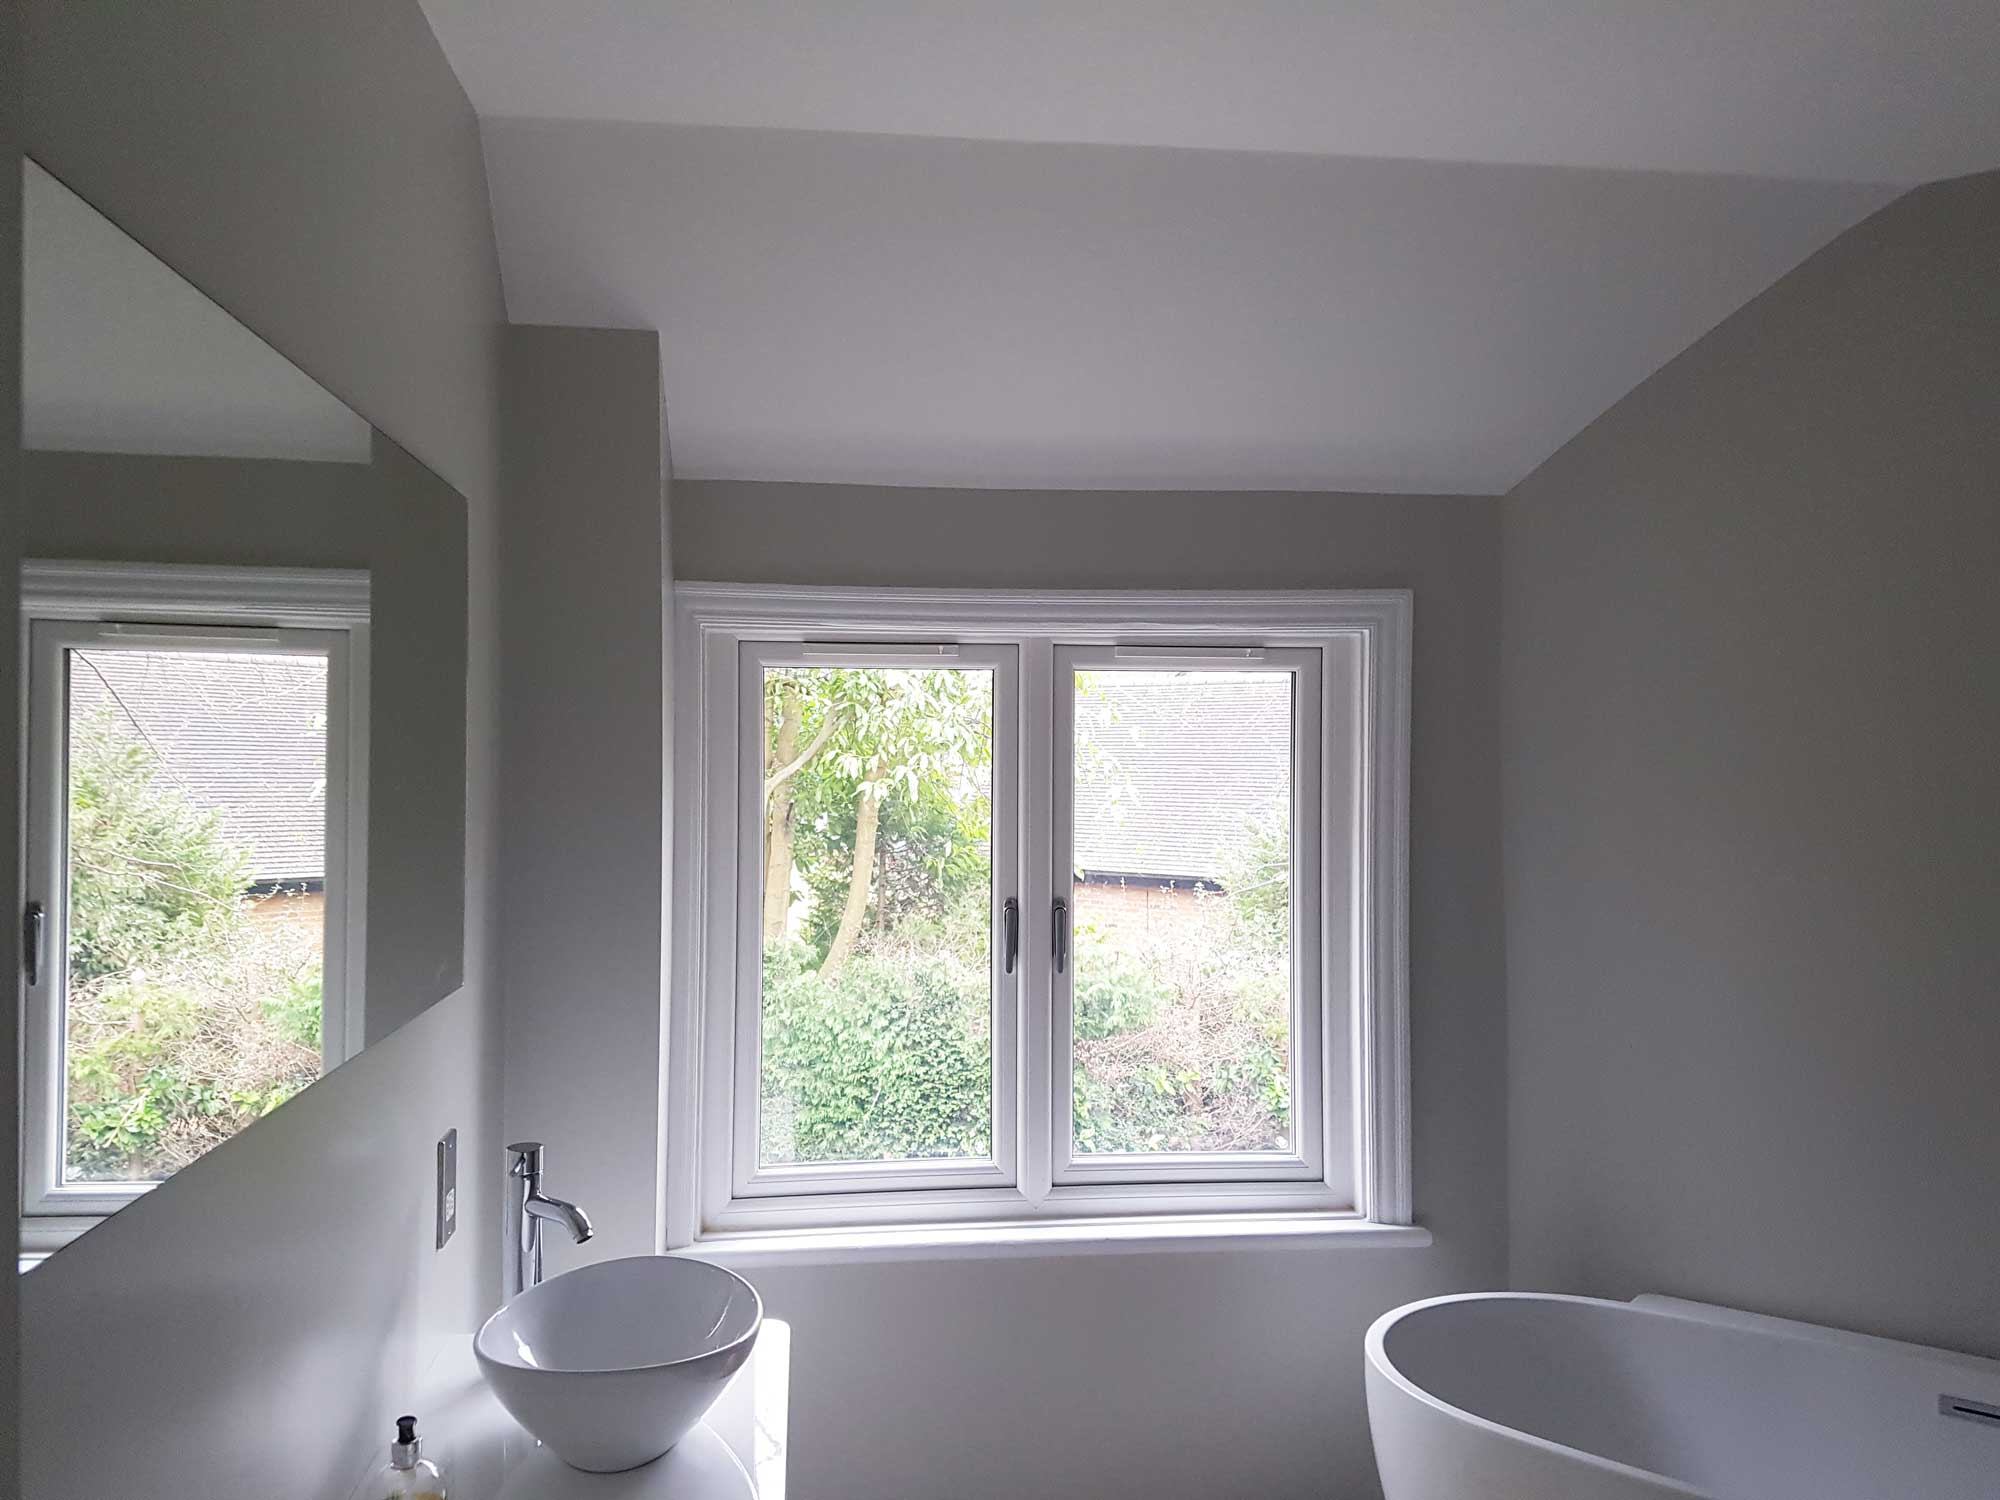 Bathroom Shutters For Window Of Detached House In South